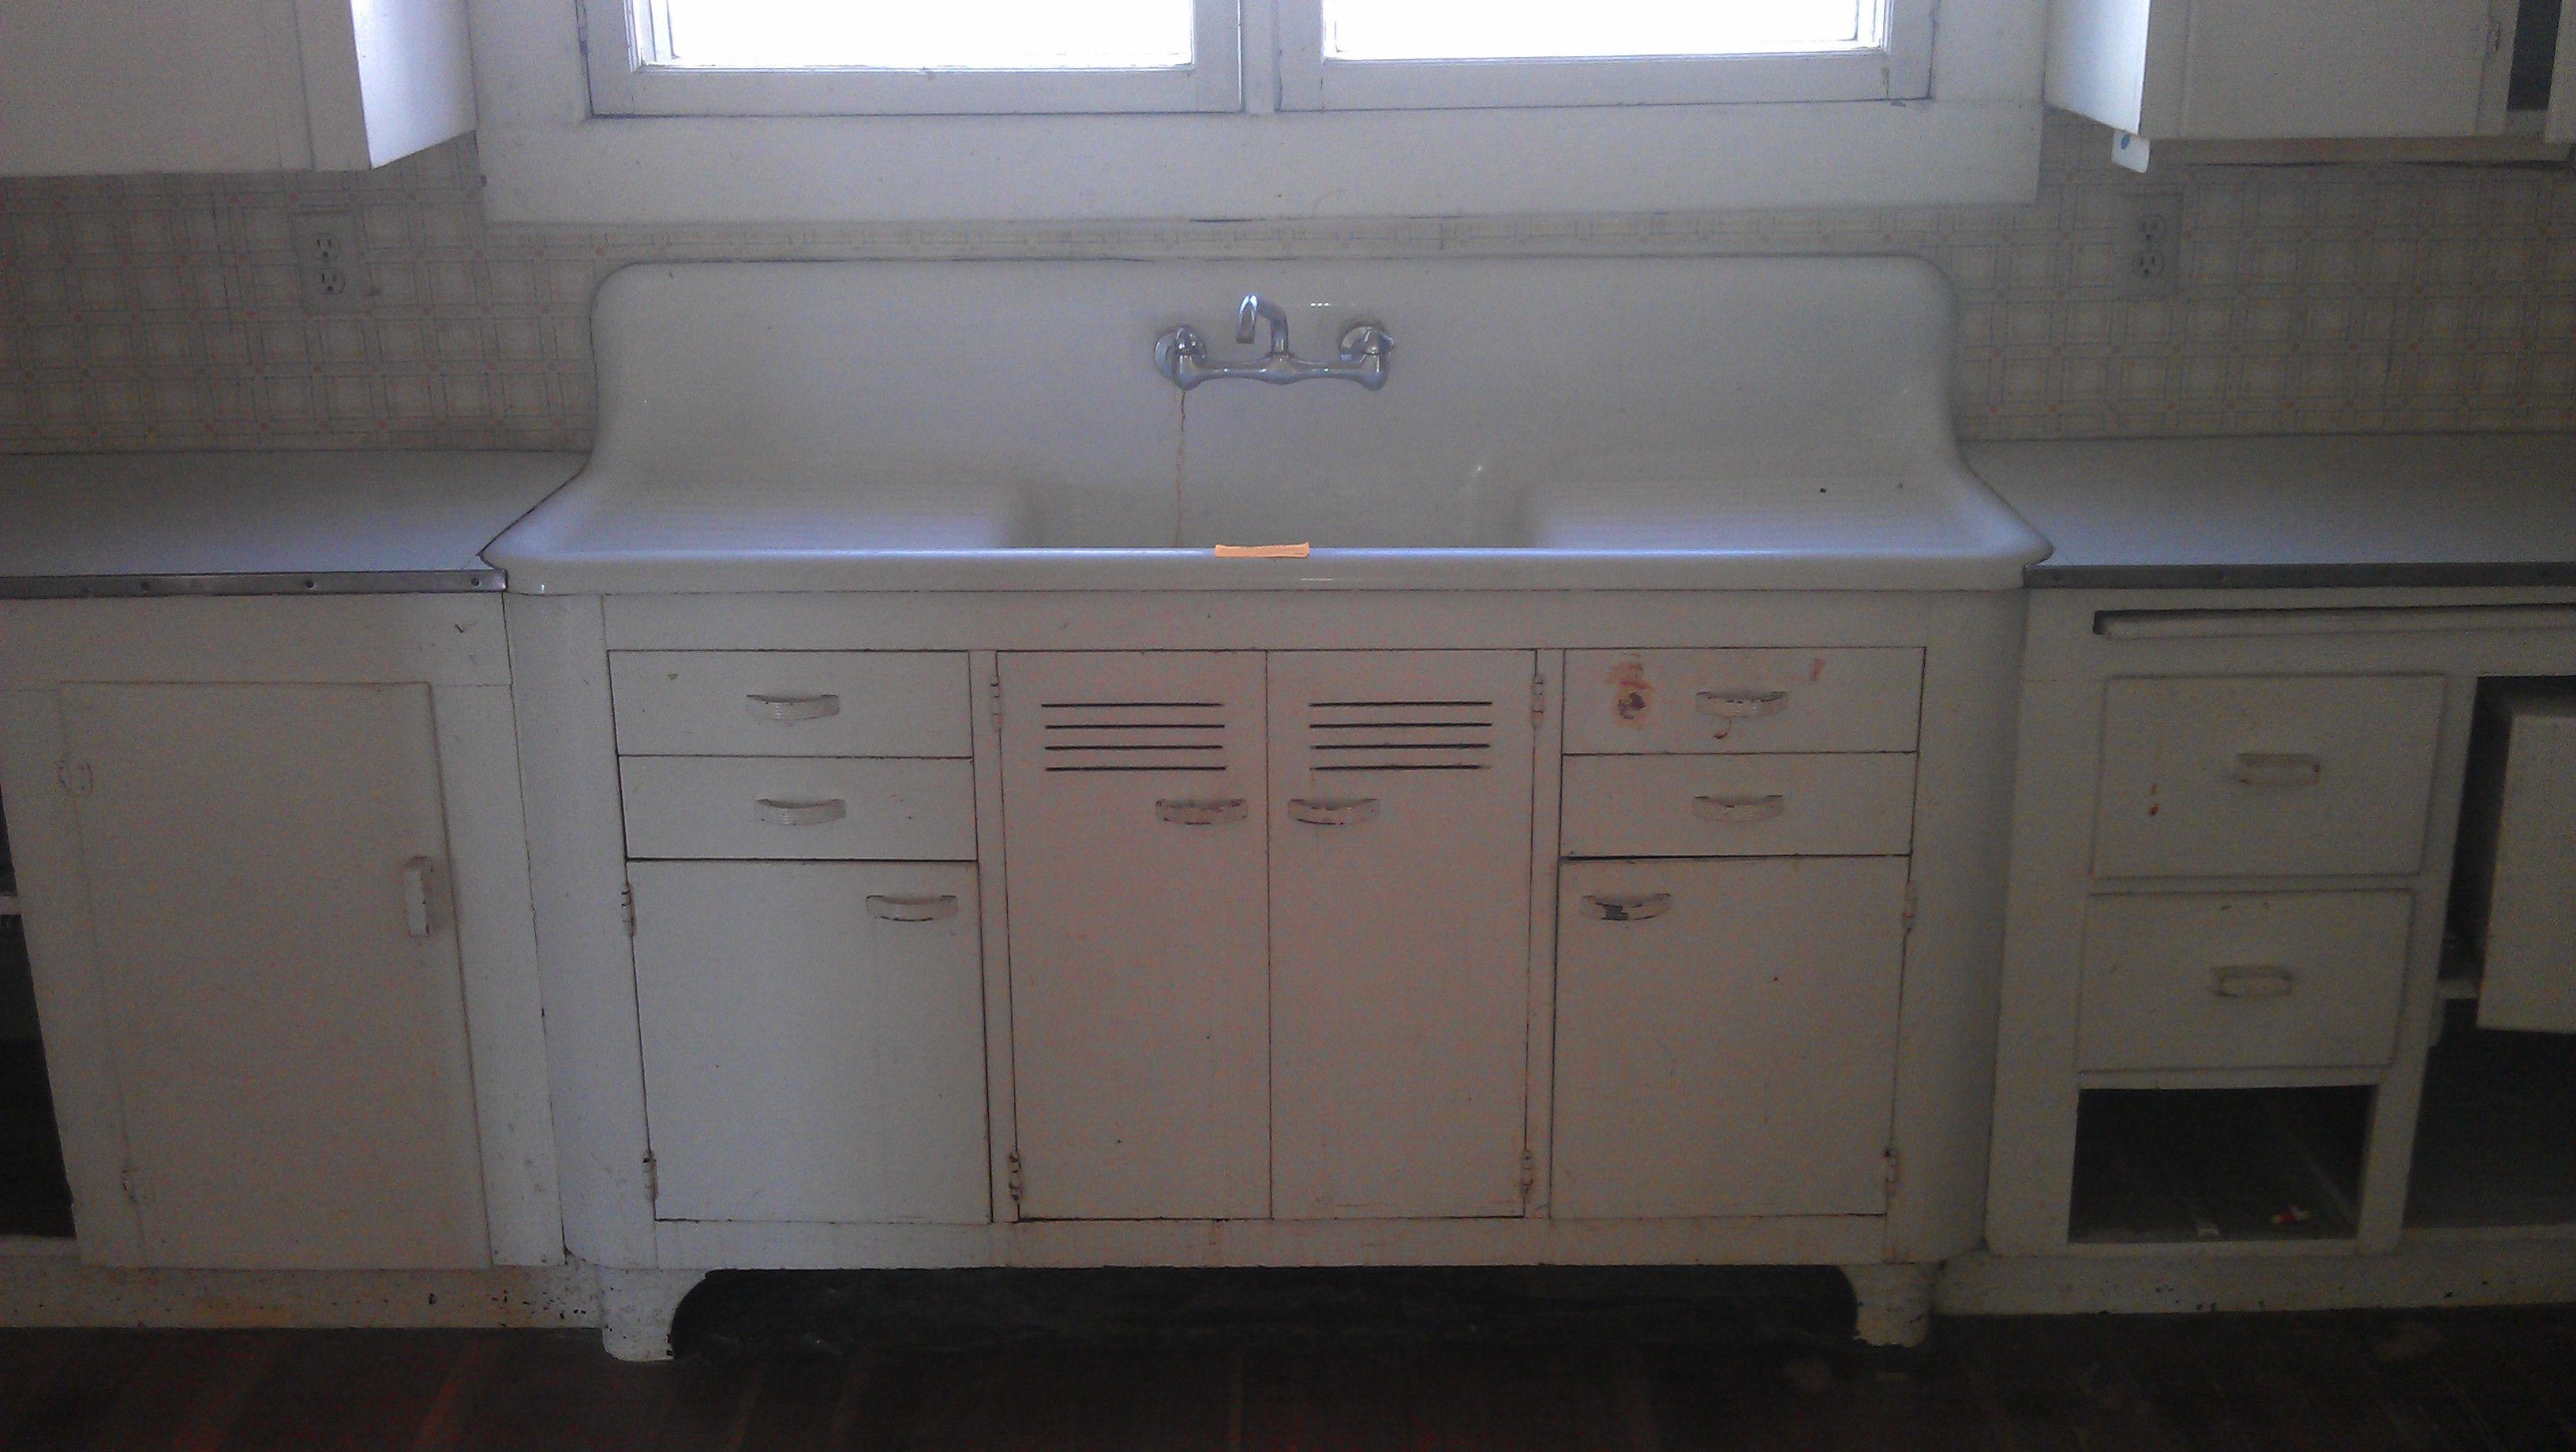 mounted double drain board farm sink | Vintage Single Basin Double ...